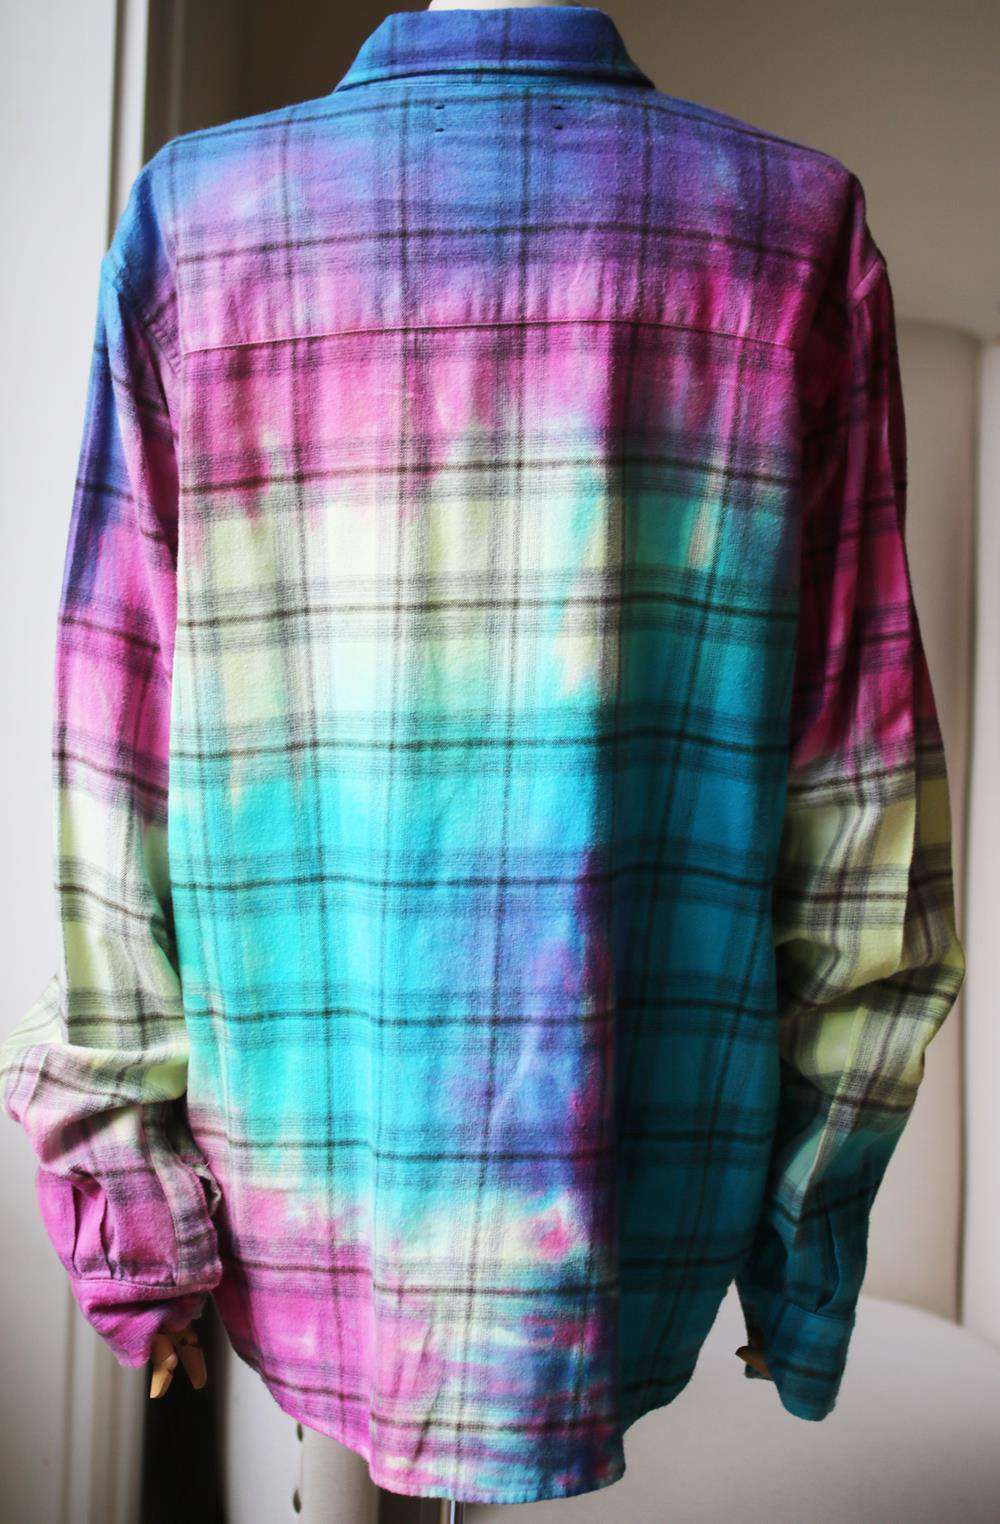 AMIRI TIE DYED PLAID COTTON FLANNEL SHIRT LARGE